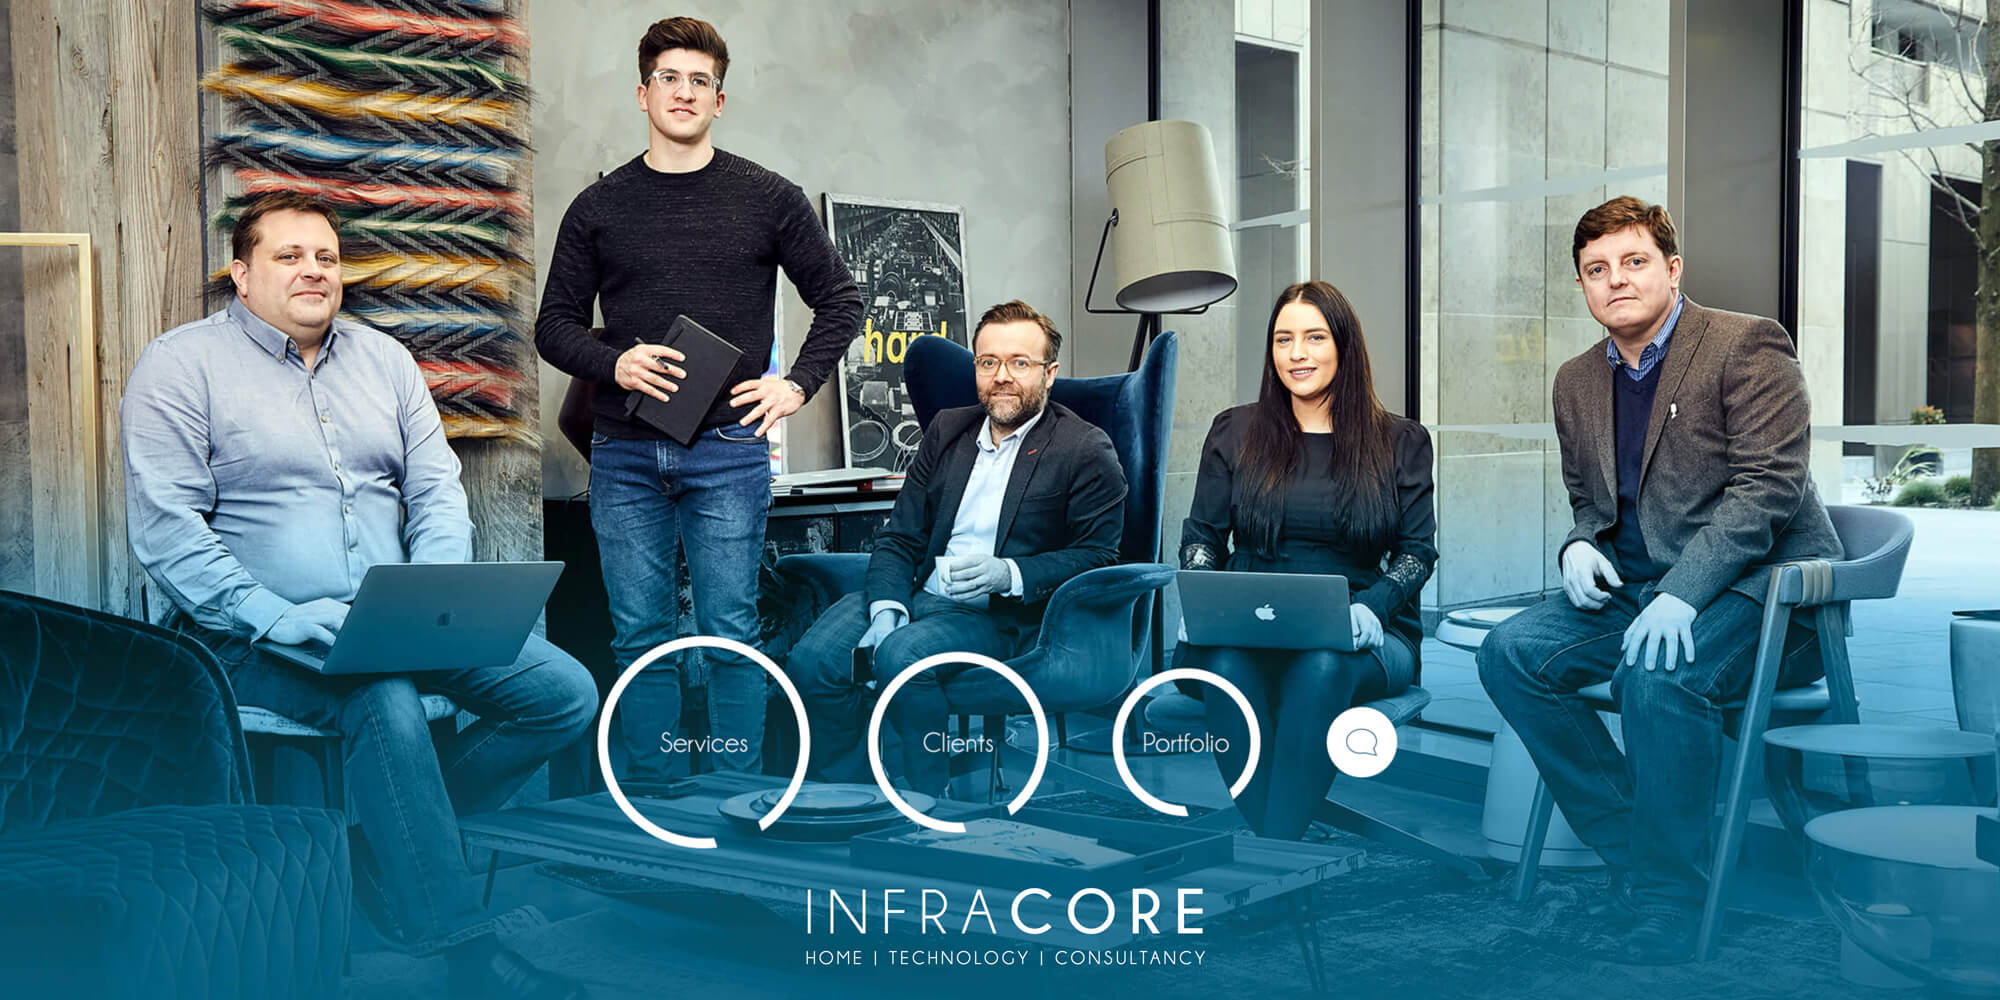 infracore HTC london website design